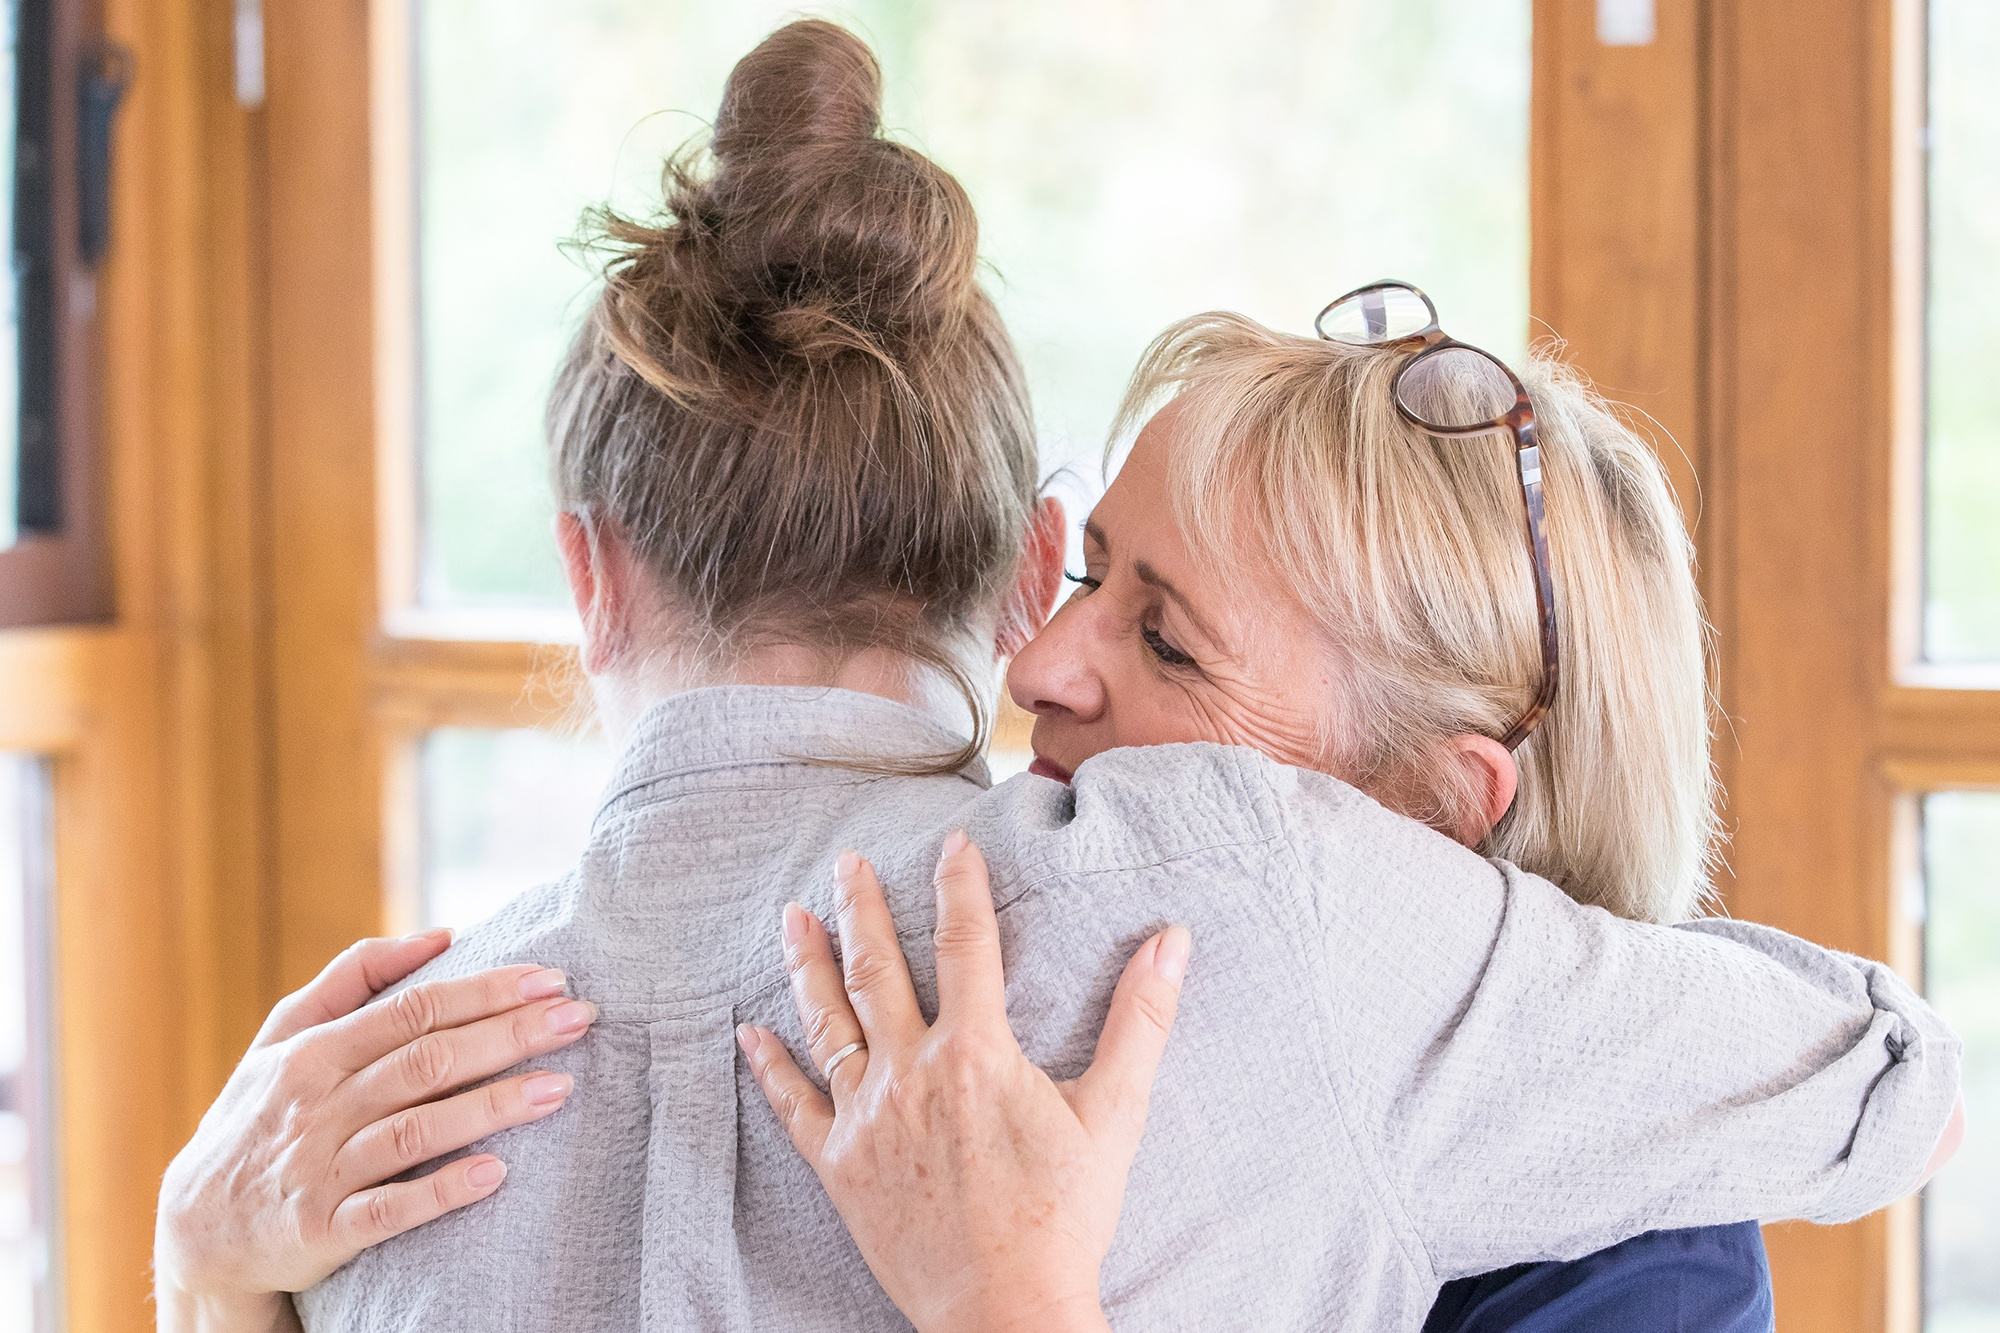 Image of a Sue Ryder nurse with her arms around a patient